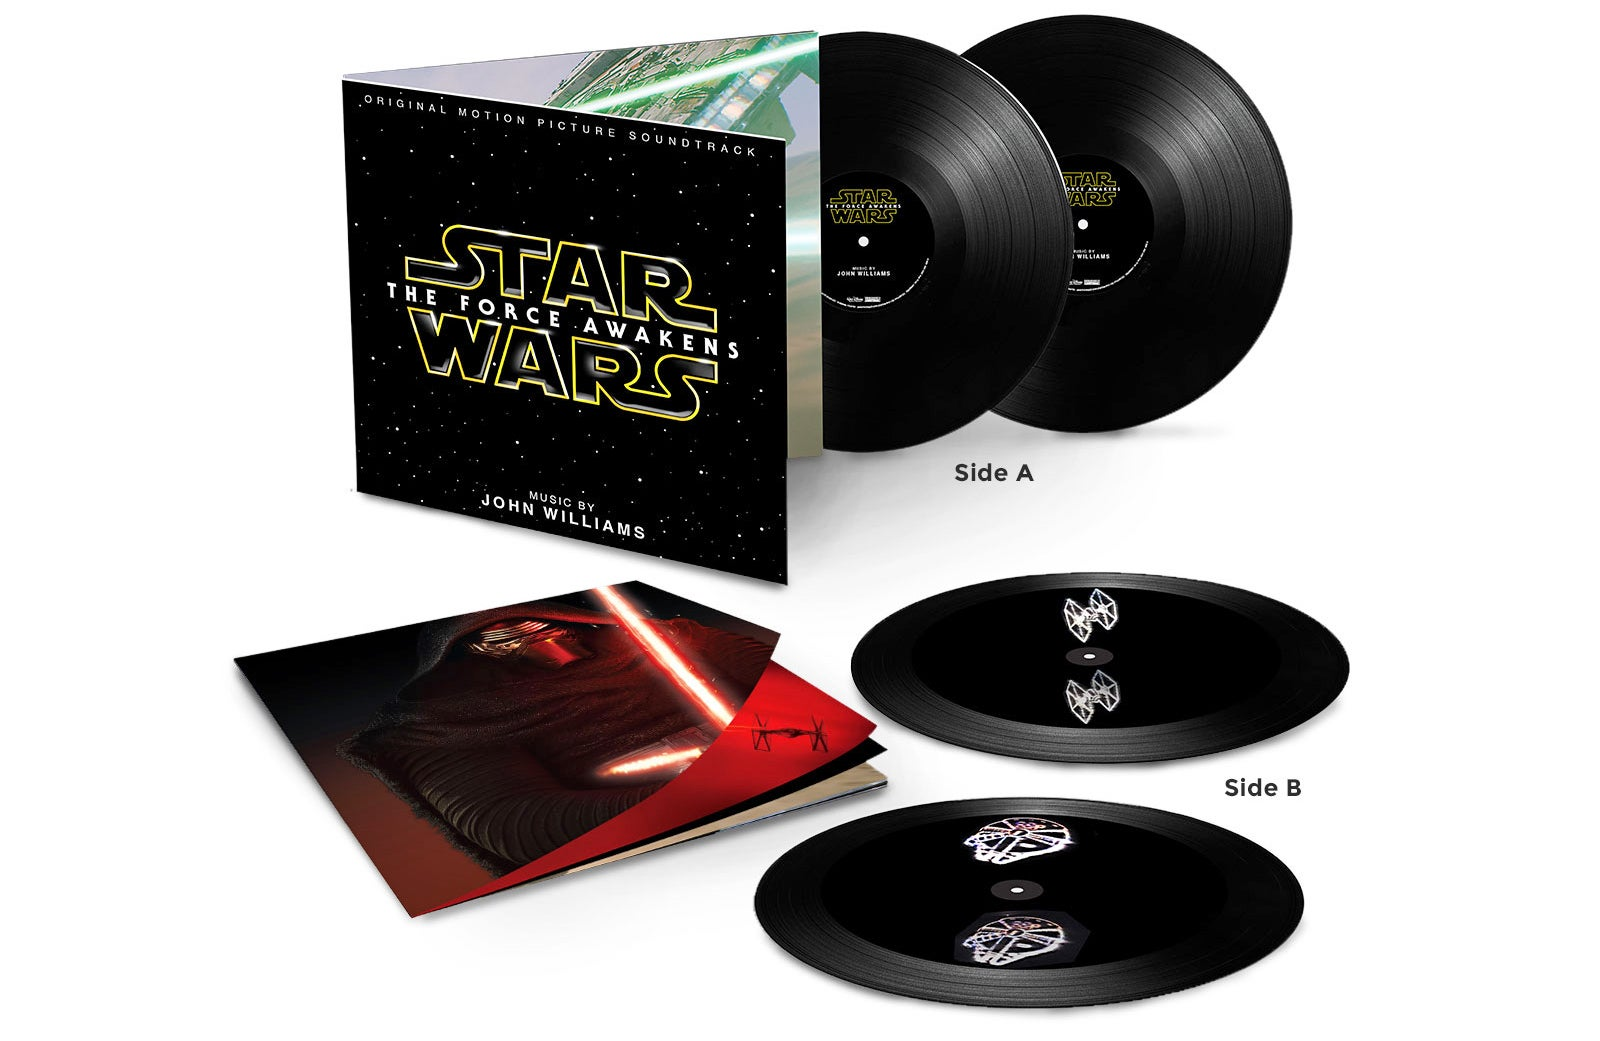 The Force Awakens' Soundtrack on Vinyl Has 3D Spinning Holograms Etched Onto the Records